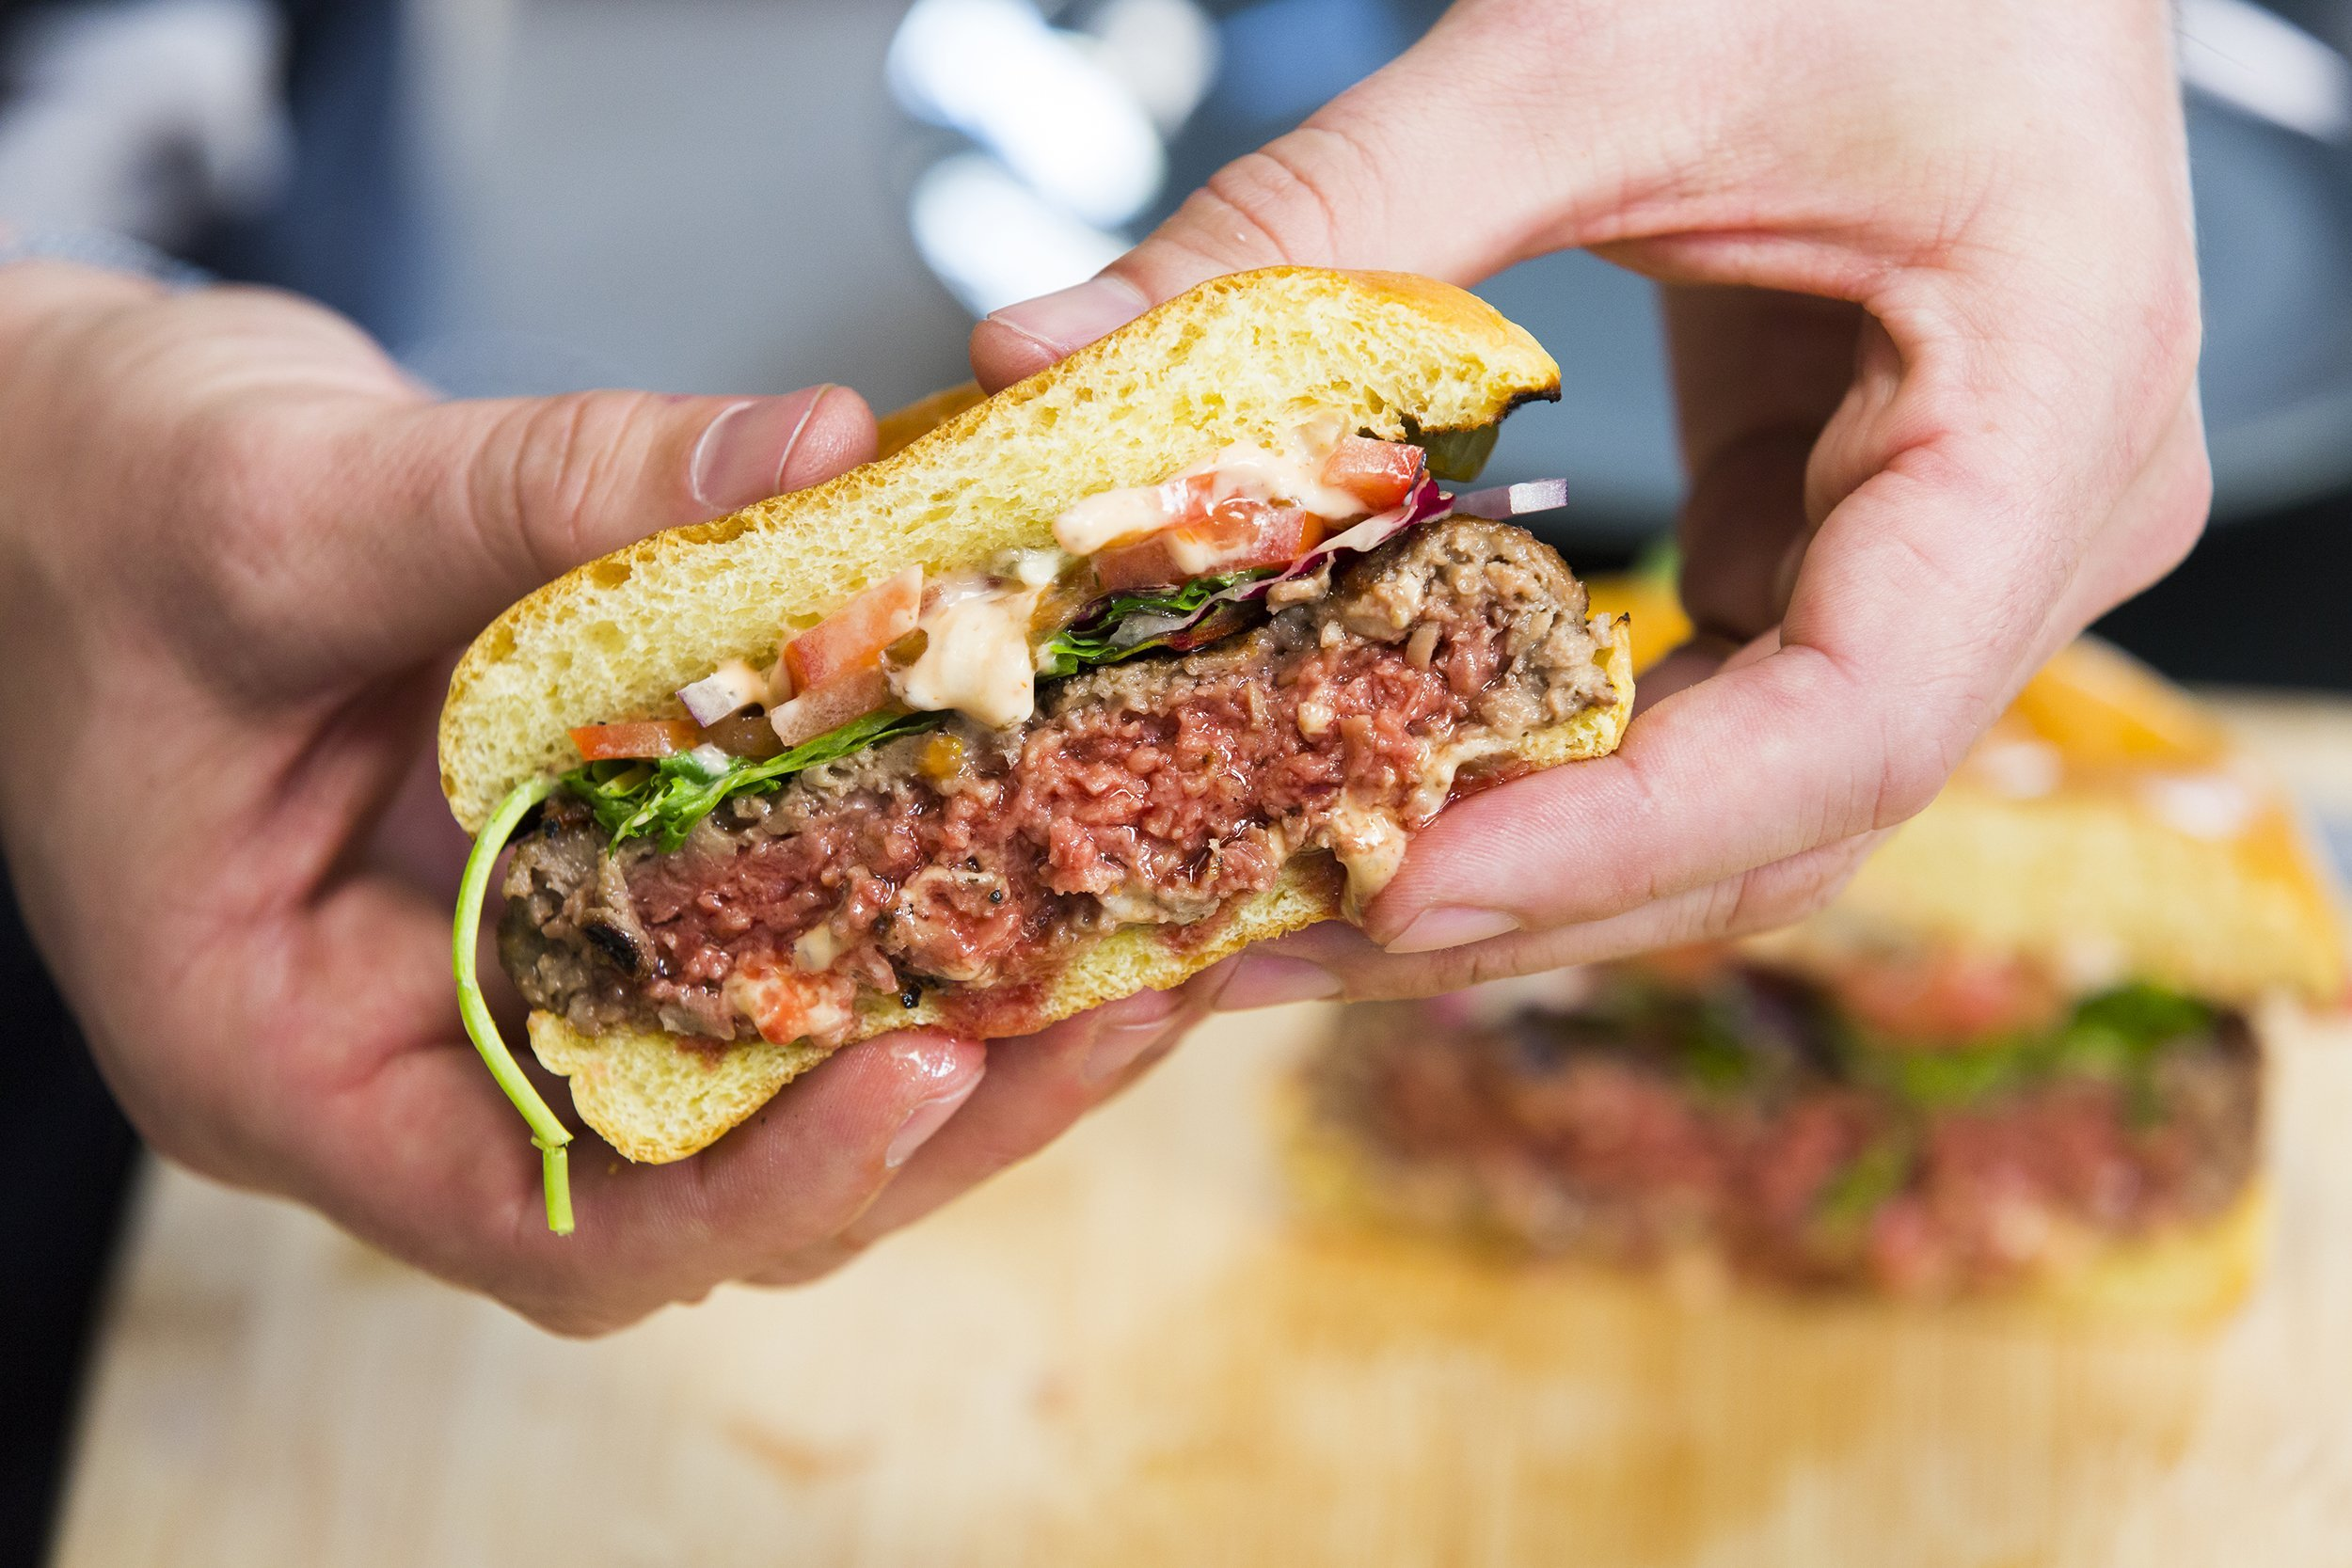 Impossible Burgers will start selling in grocery stores for the first time this week